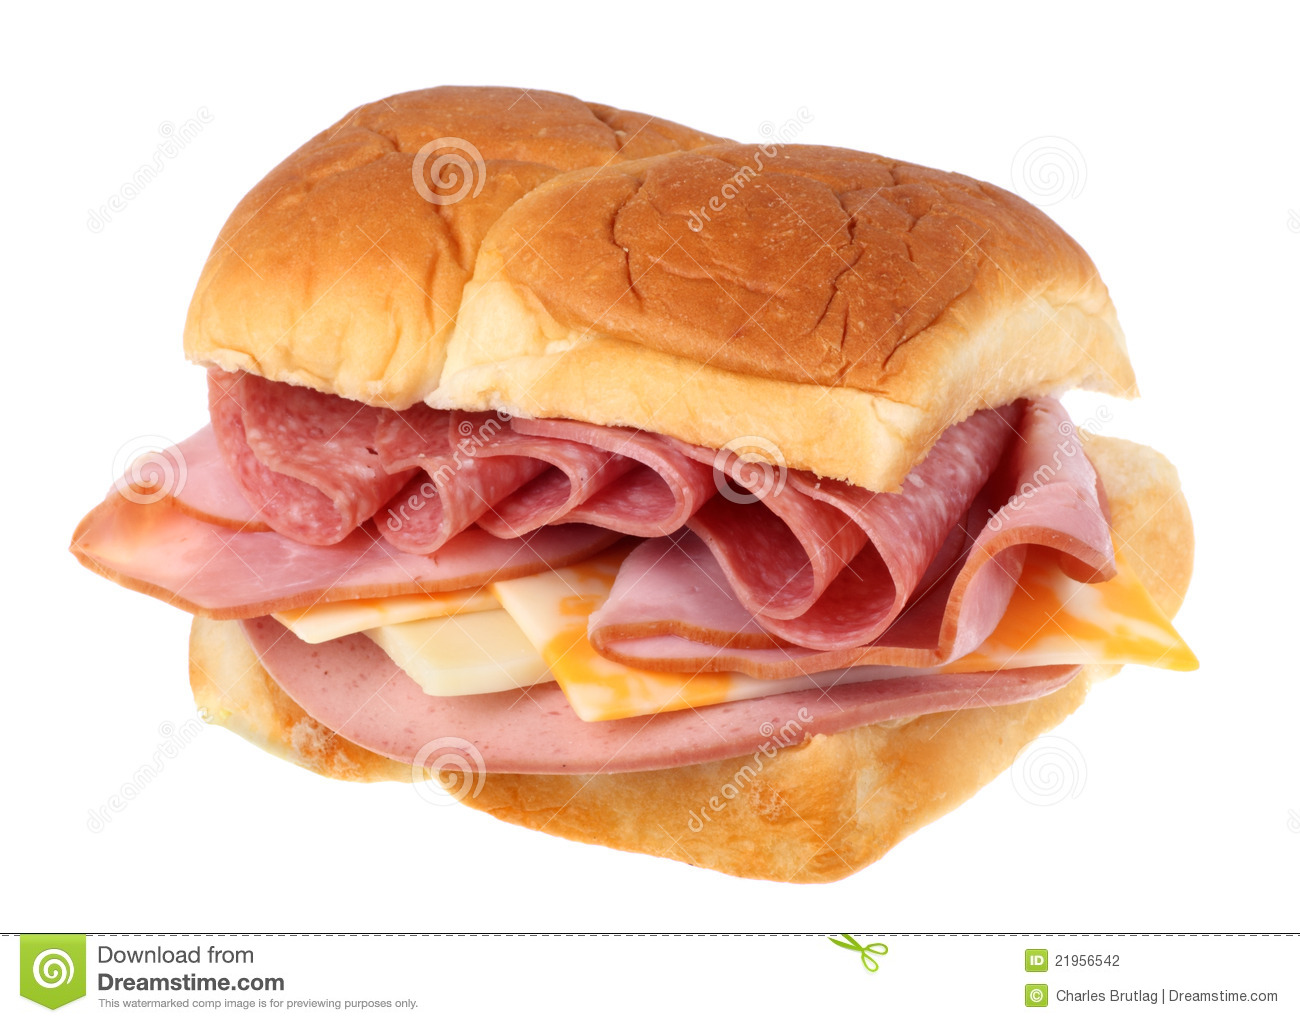 Sandwich with ham, pepperoni, cheese and bologna isolated on white.